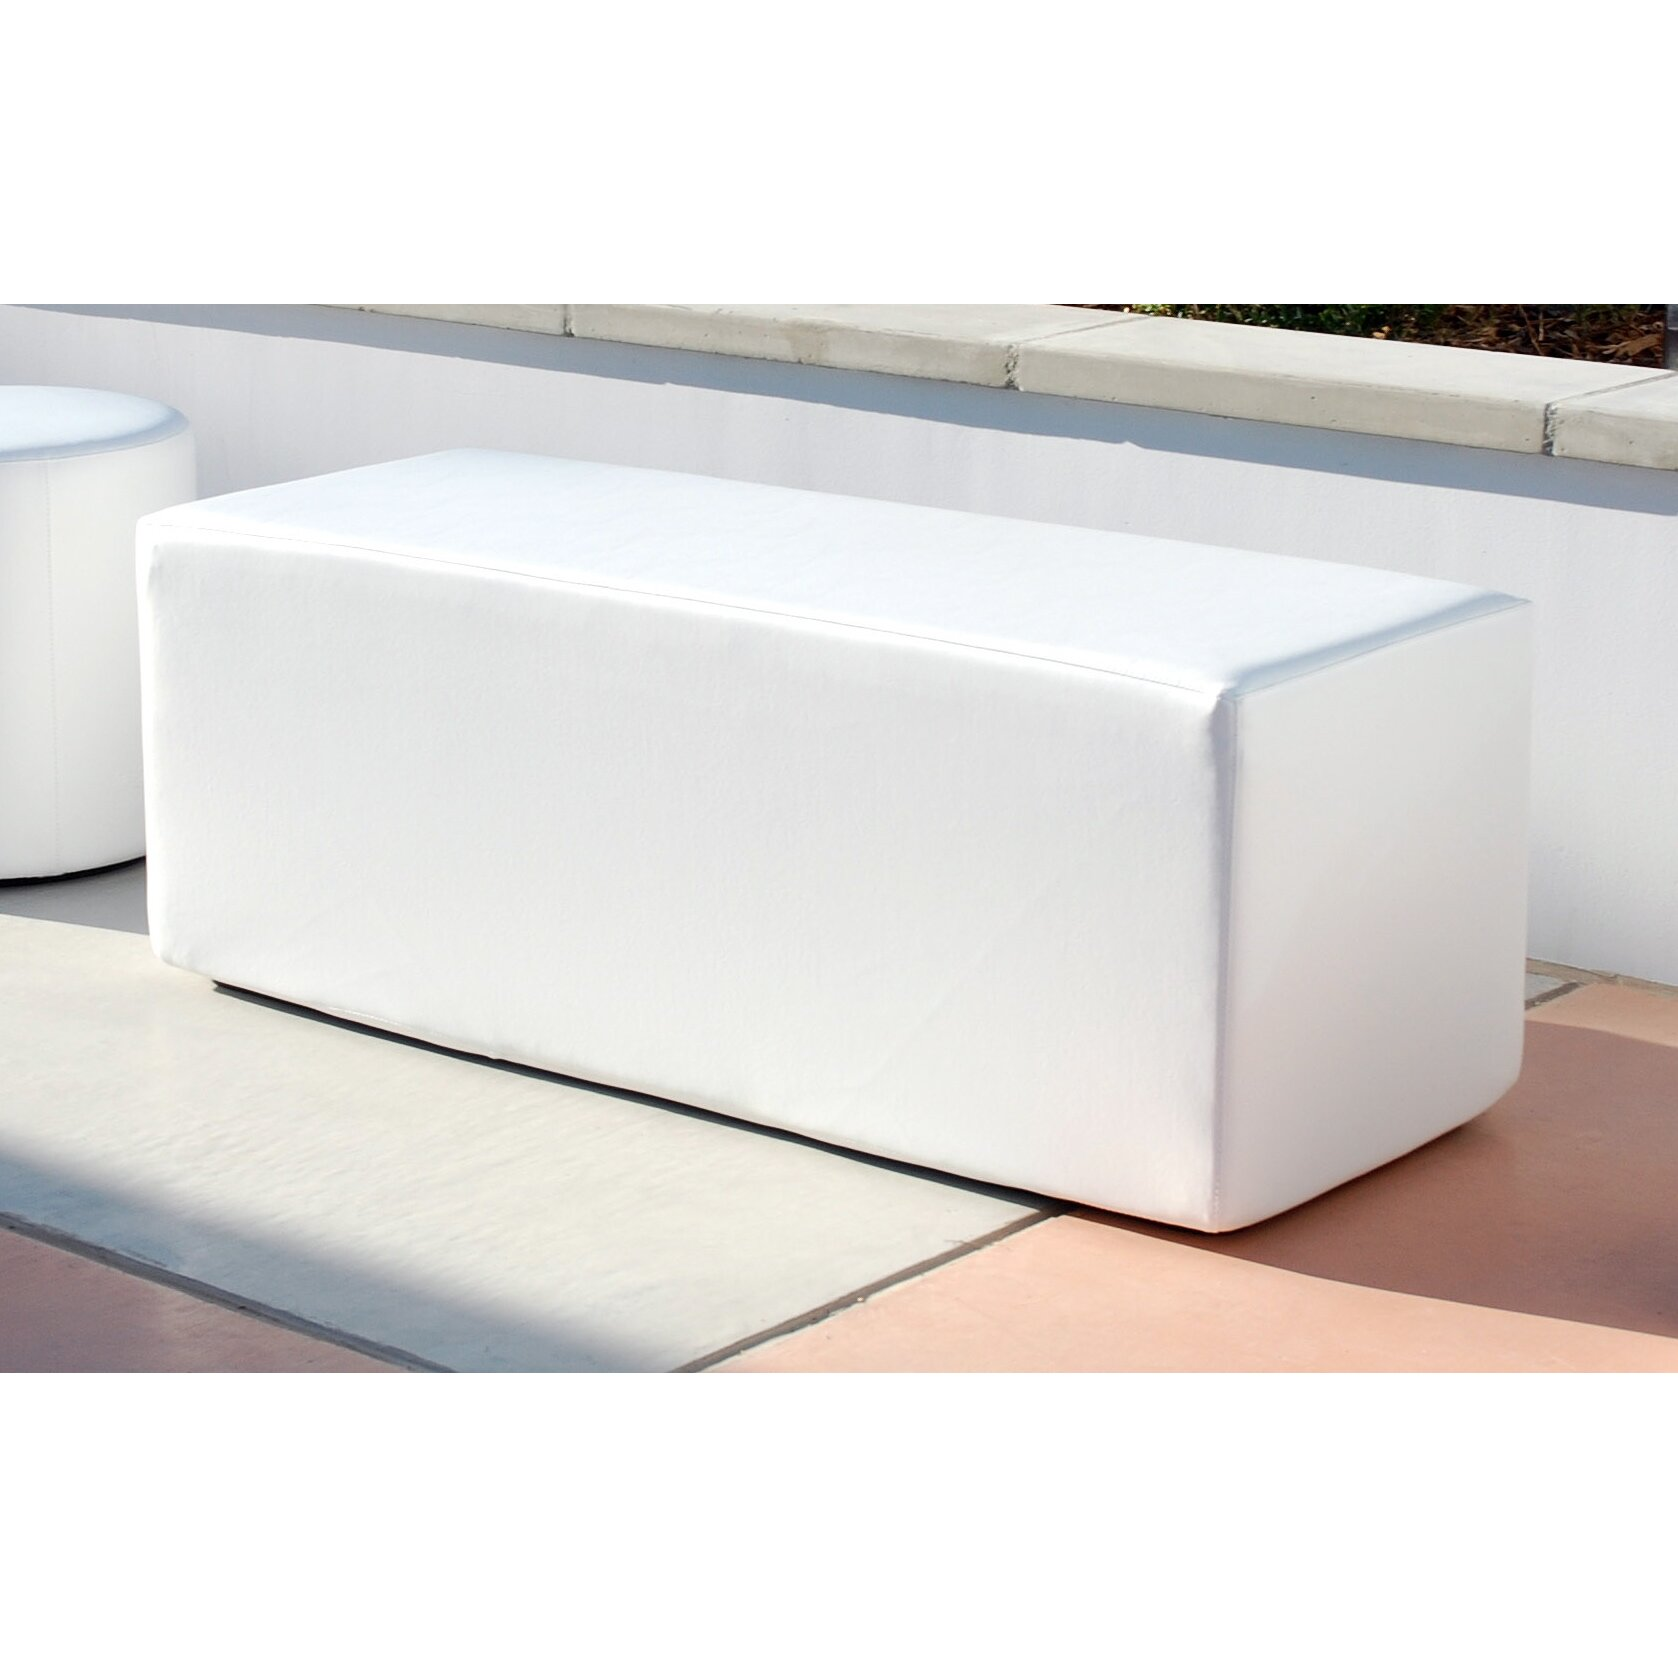 La Fete Dash Vinyl Bench Reviews Wayfair